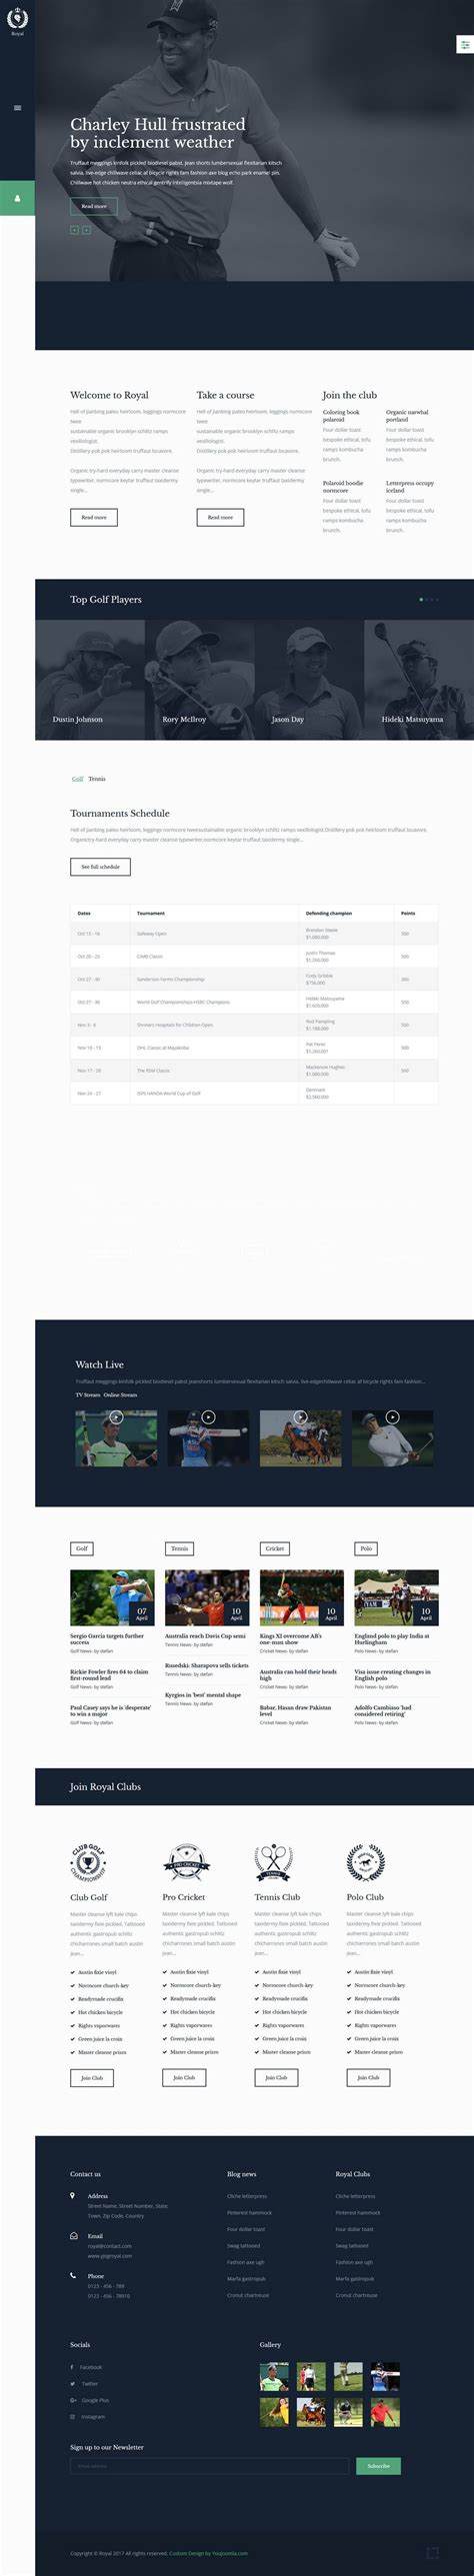 royal sports joomla template by you joomla